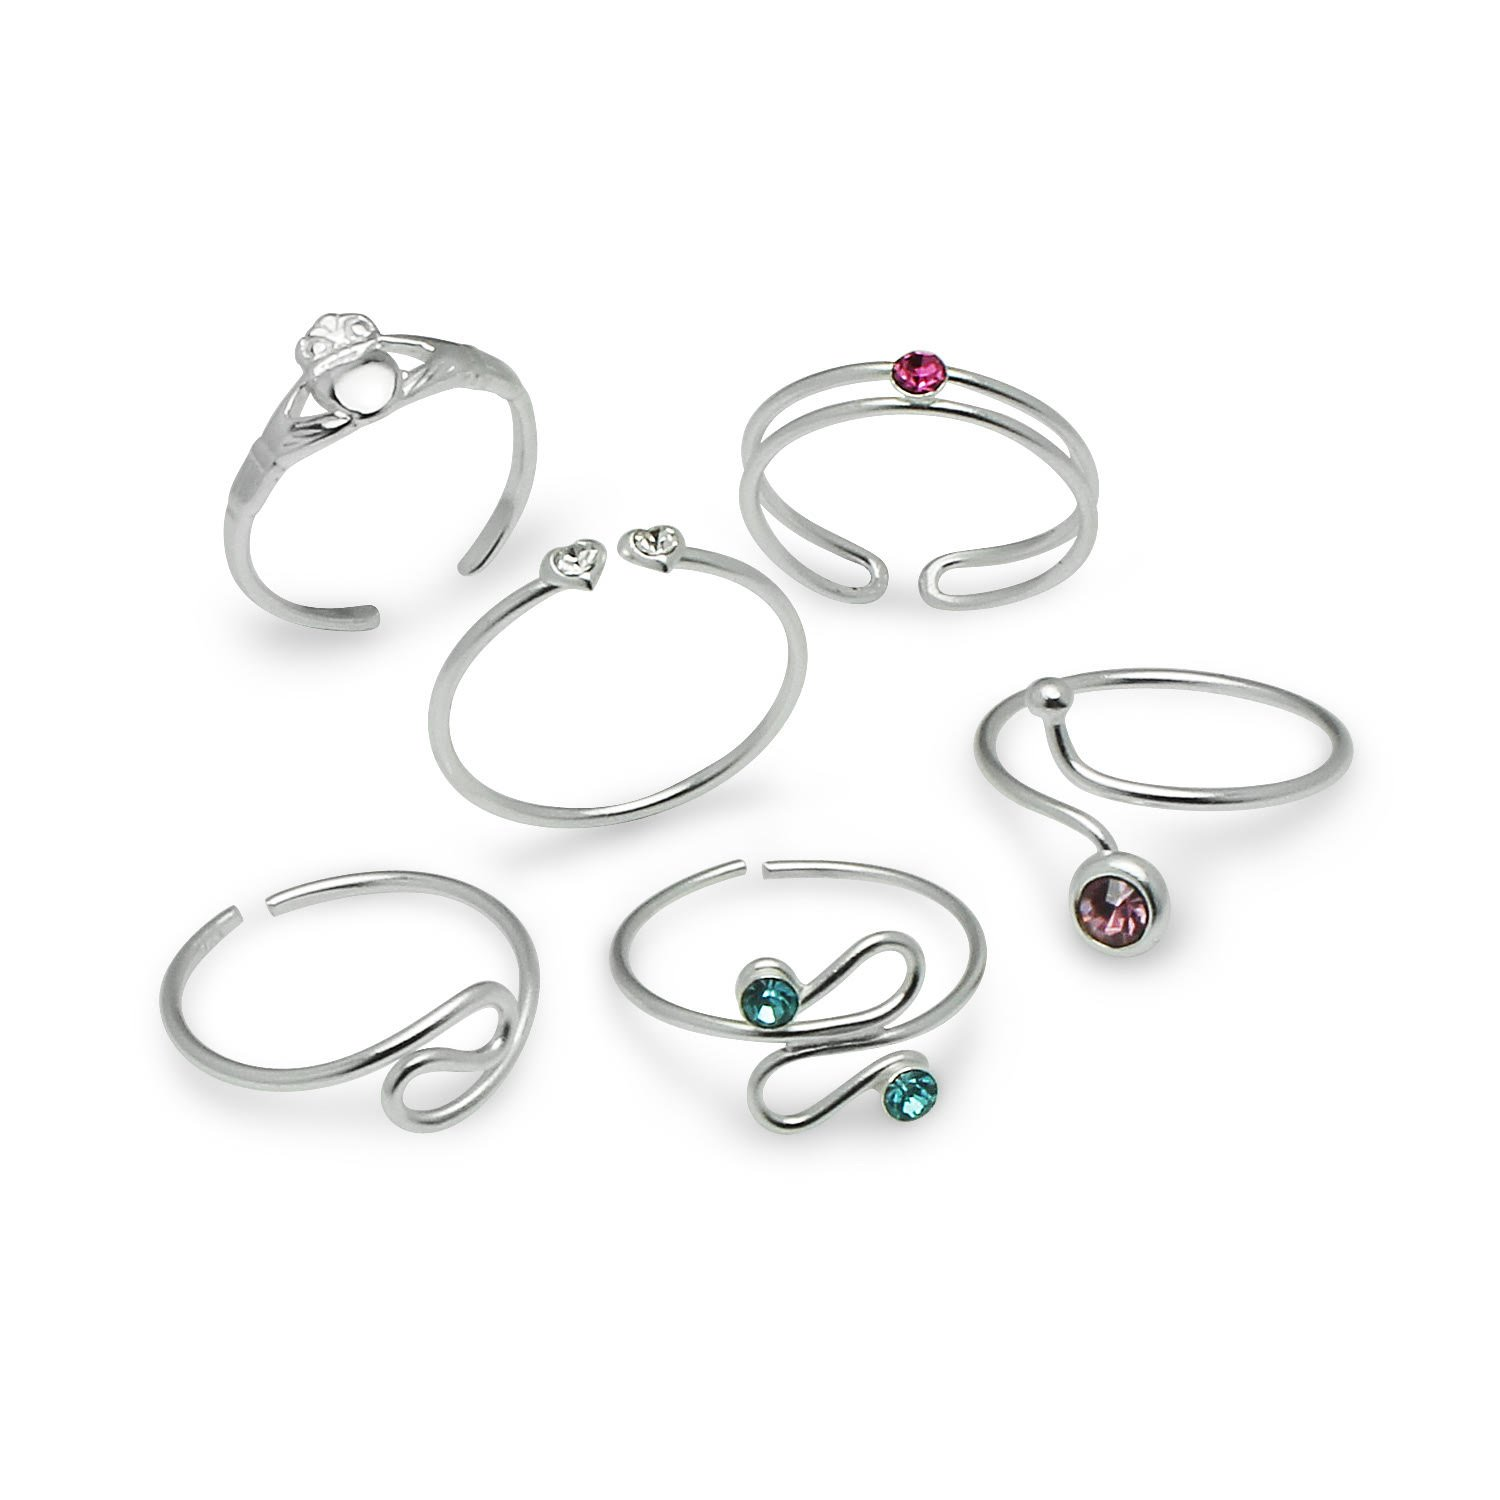 Sterling Silver Adjustable Toe Rings Set of 6 Pieces - Great as Thumb Rings by Silverline Jewelry